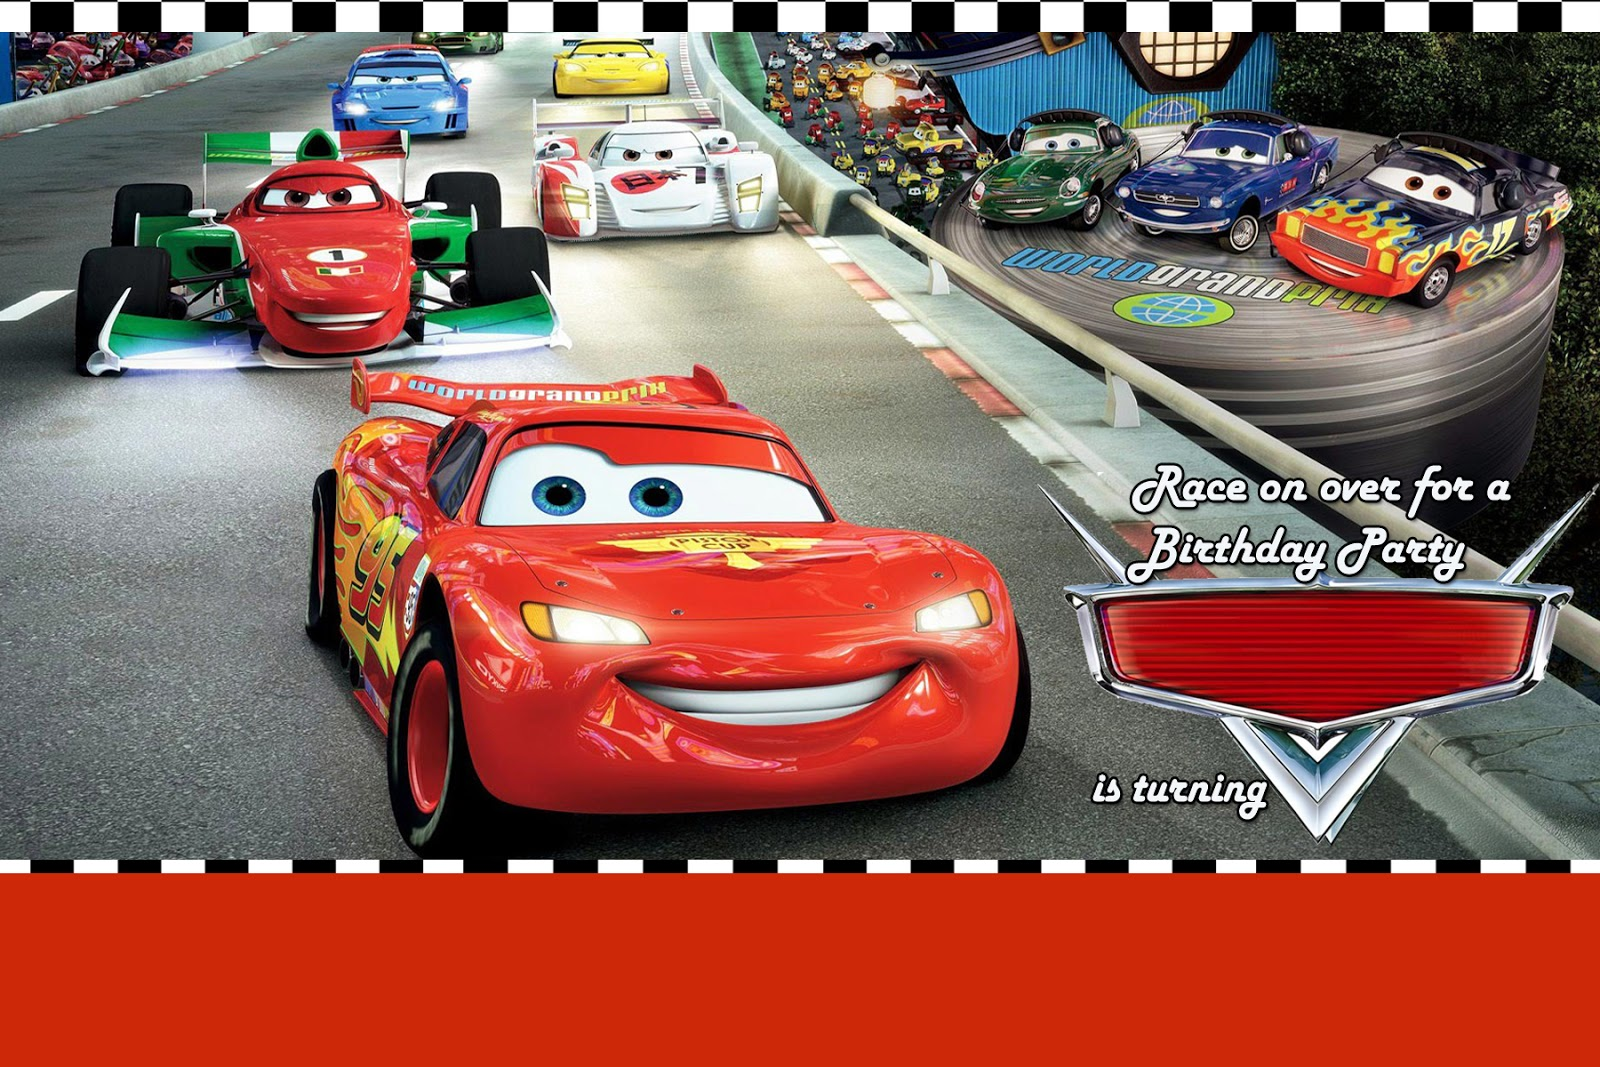 Moms kiddie party link disney cars party invitation 2 use any photo editing software like photoshop or photoscape and put the celebrants name age date time and place of venue you can use any font as you stopboris Gallery